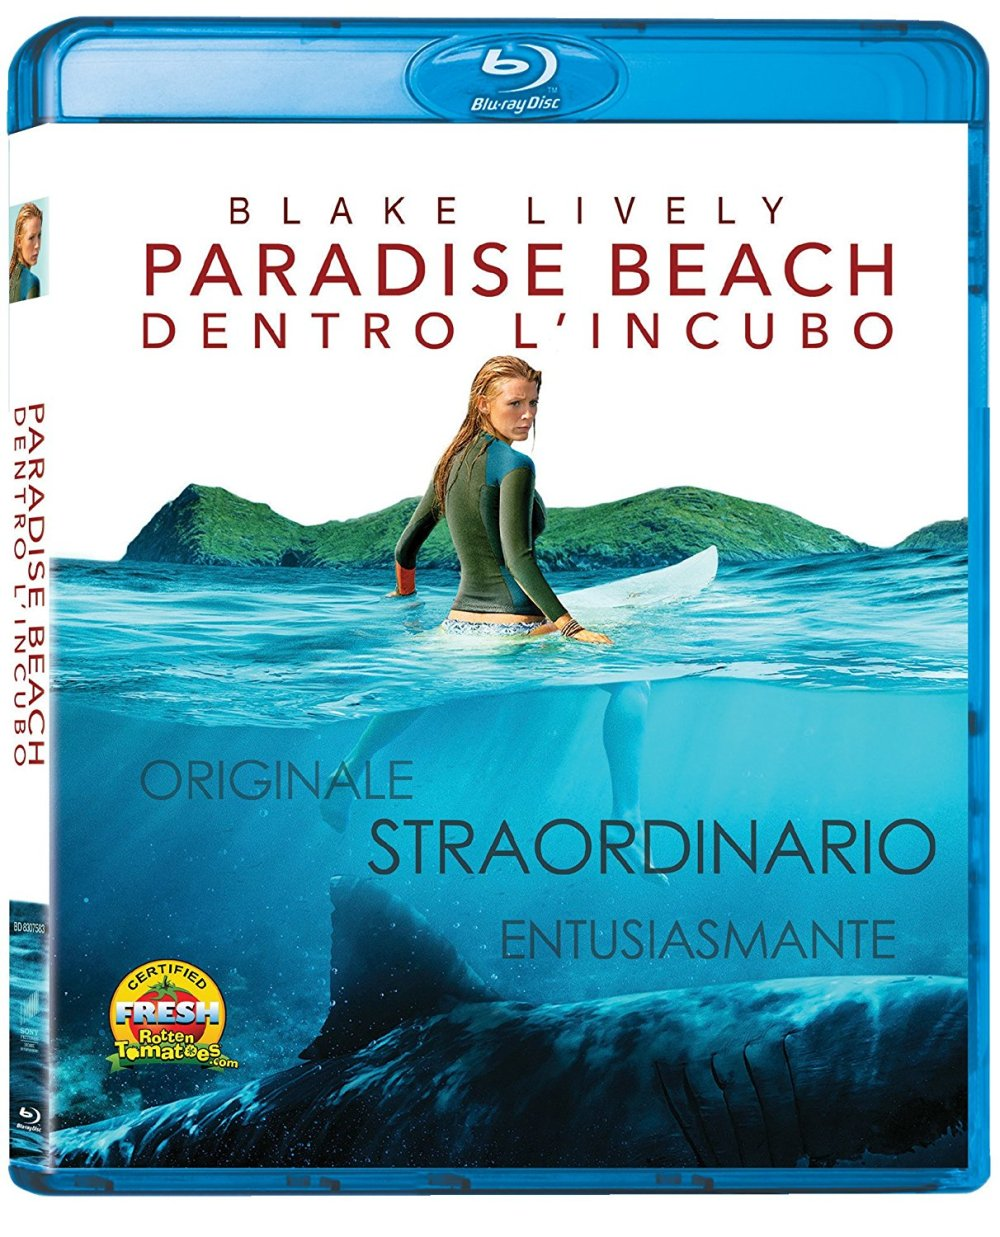 shallow-paradise-beach-blu-ray0_